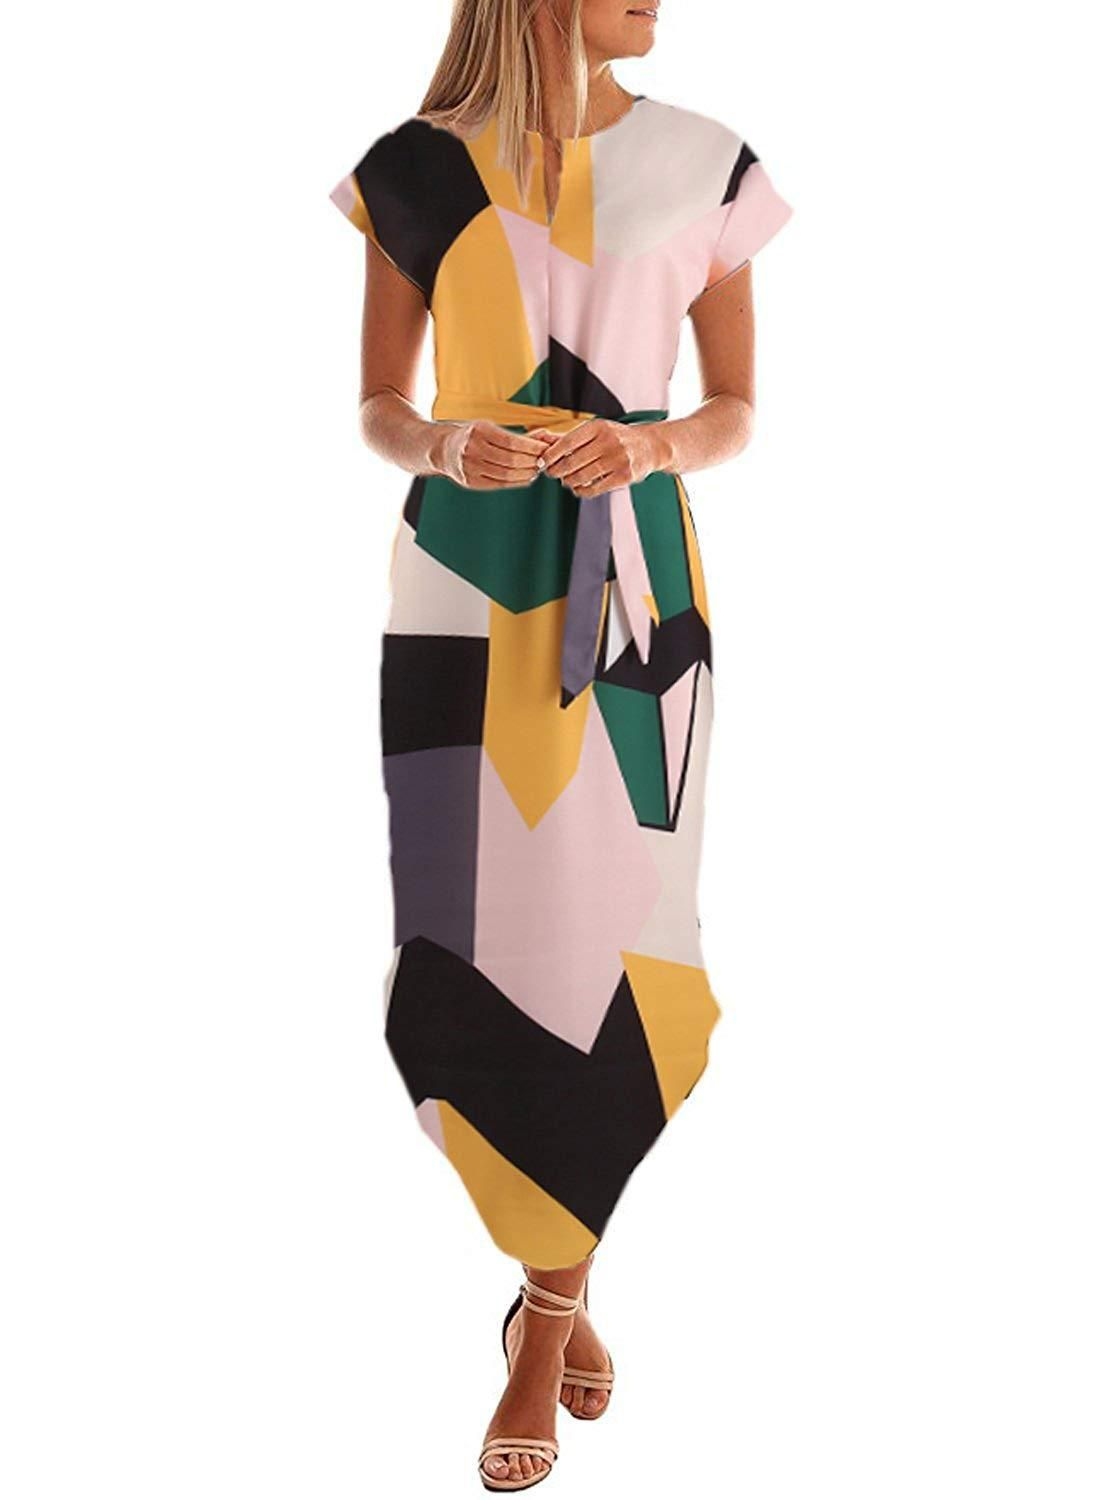 68528cb6a0928 Drimmaks Womens Short Sleeve V Neck Geometric Print Casual Midi Dress with  Belt at Amazon Womens Clothing store -- Amazon Affiliate link.